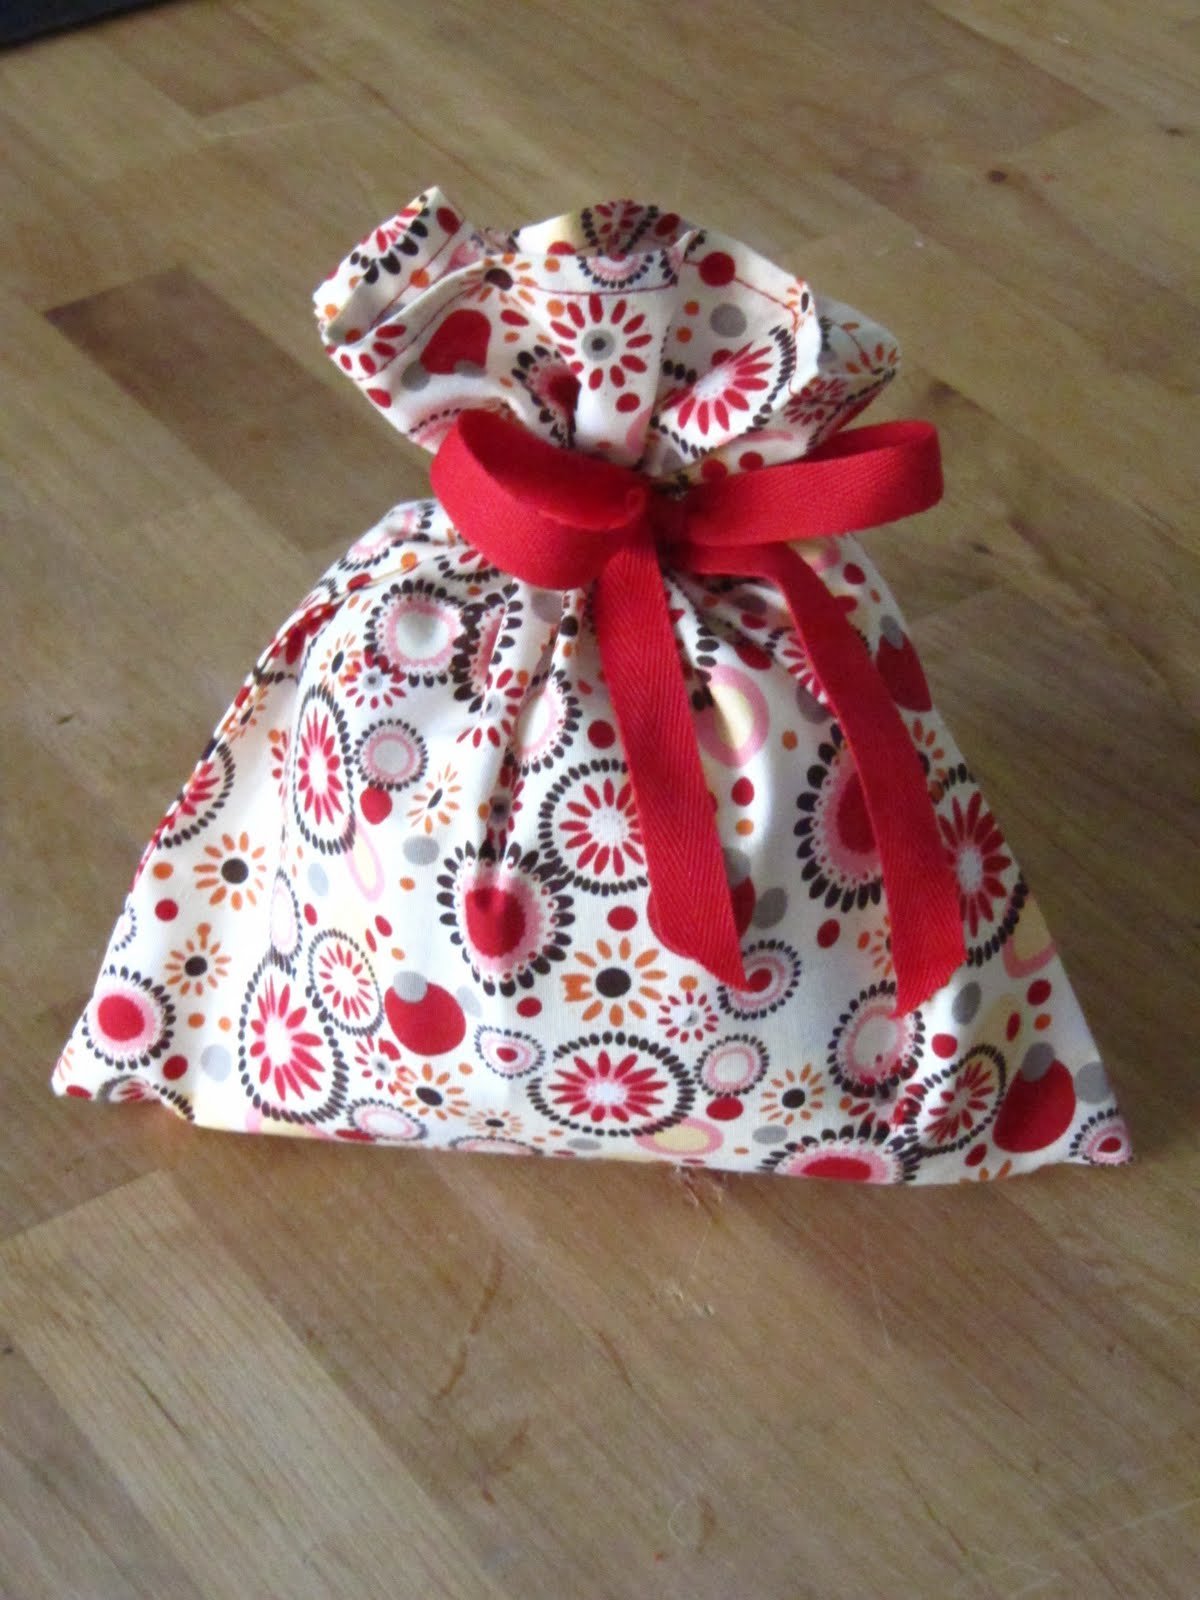 Sew Many Ways Tool Time Tuesday Handmade Fabric Gift